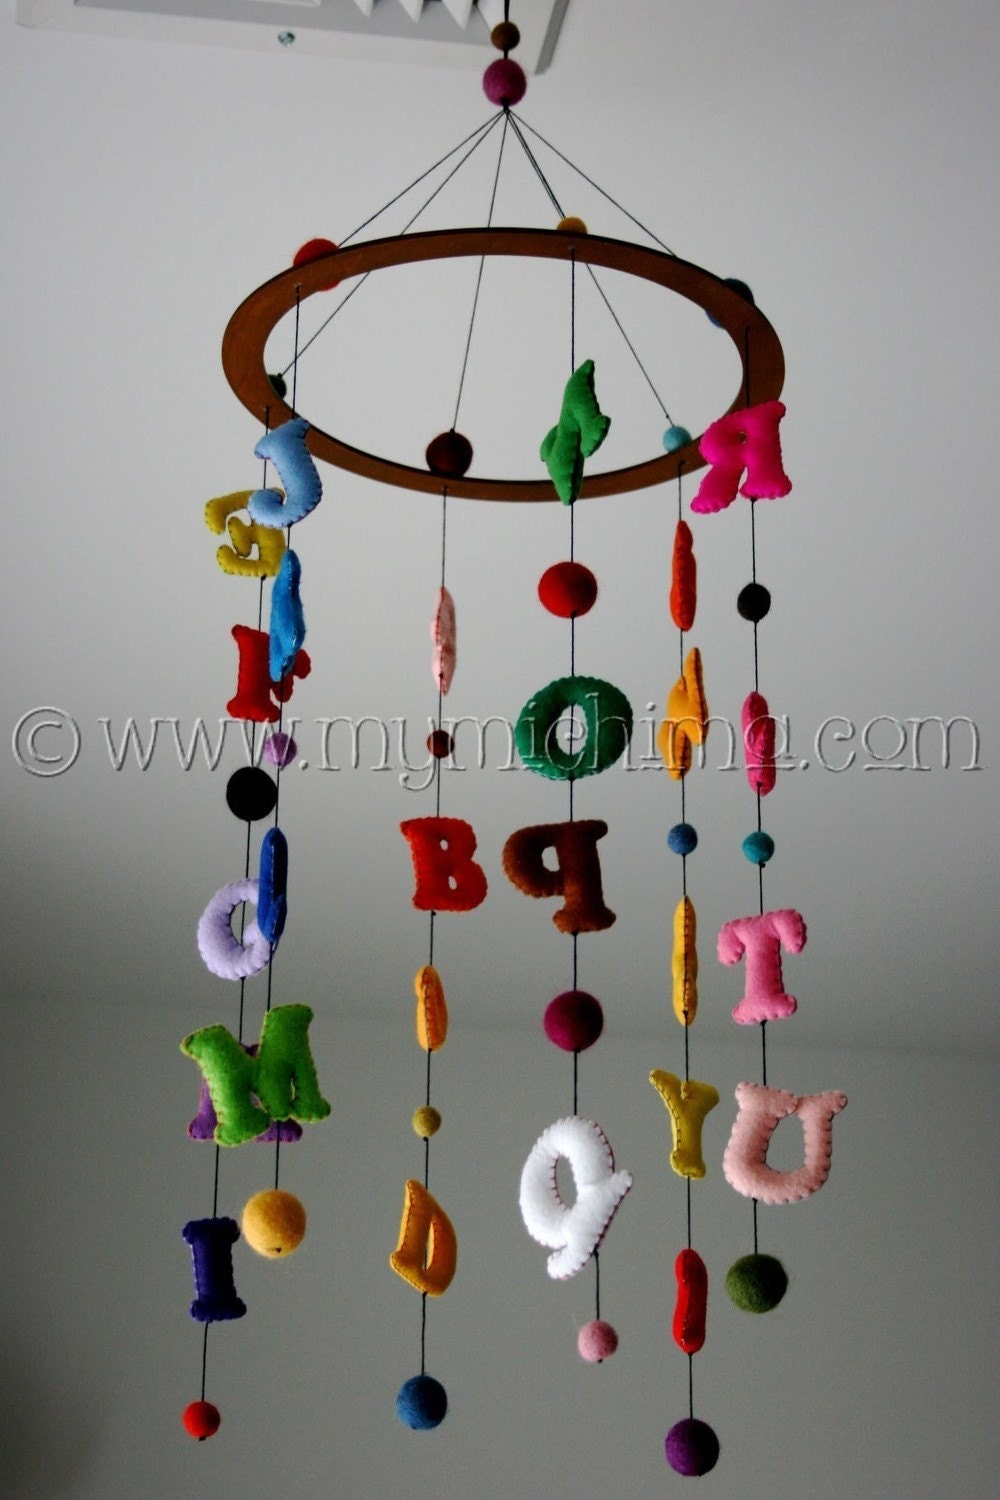 Now I Know My ABCs - Decorative Hanging Mobile - Stuffed Felt Alphabet Letters